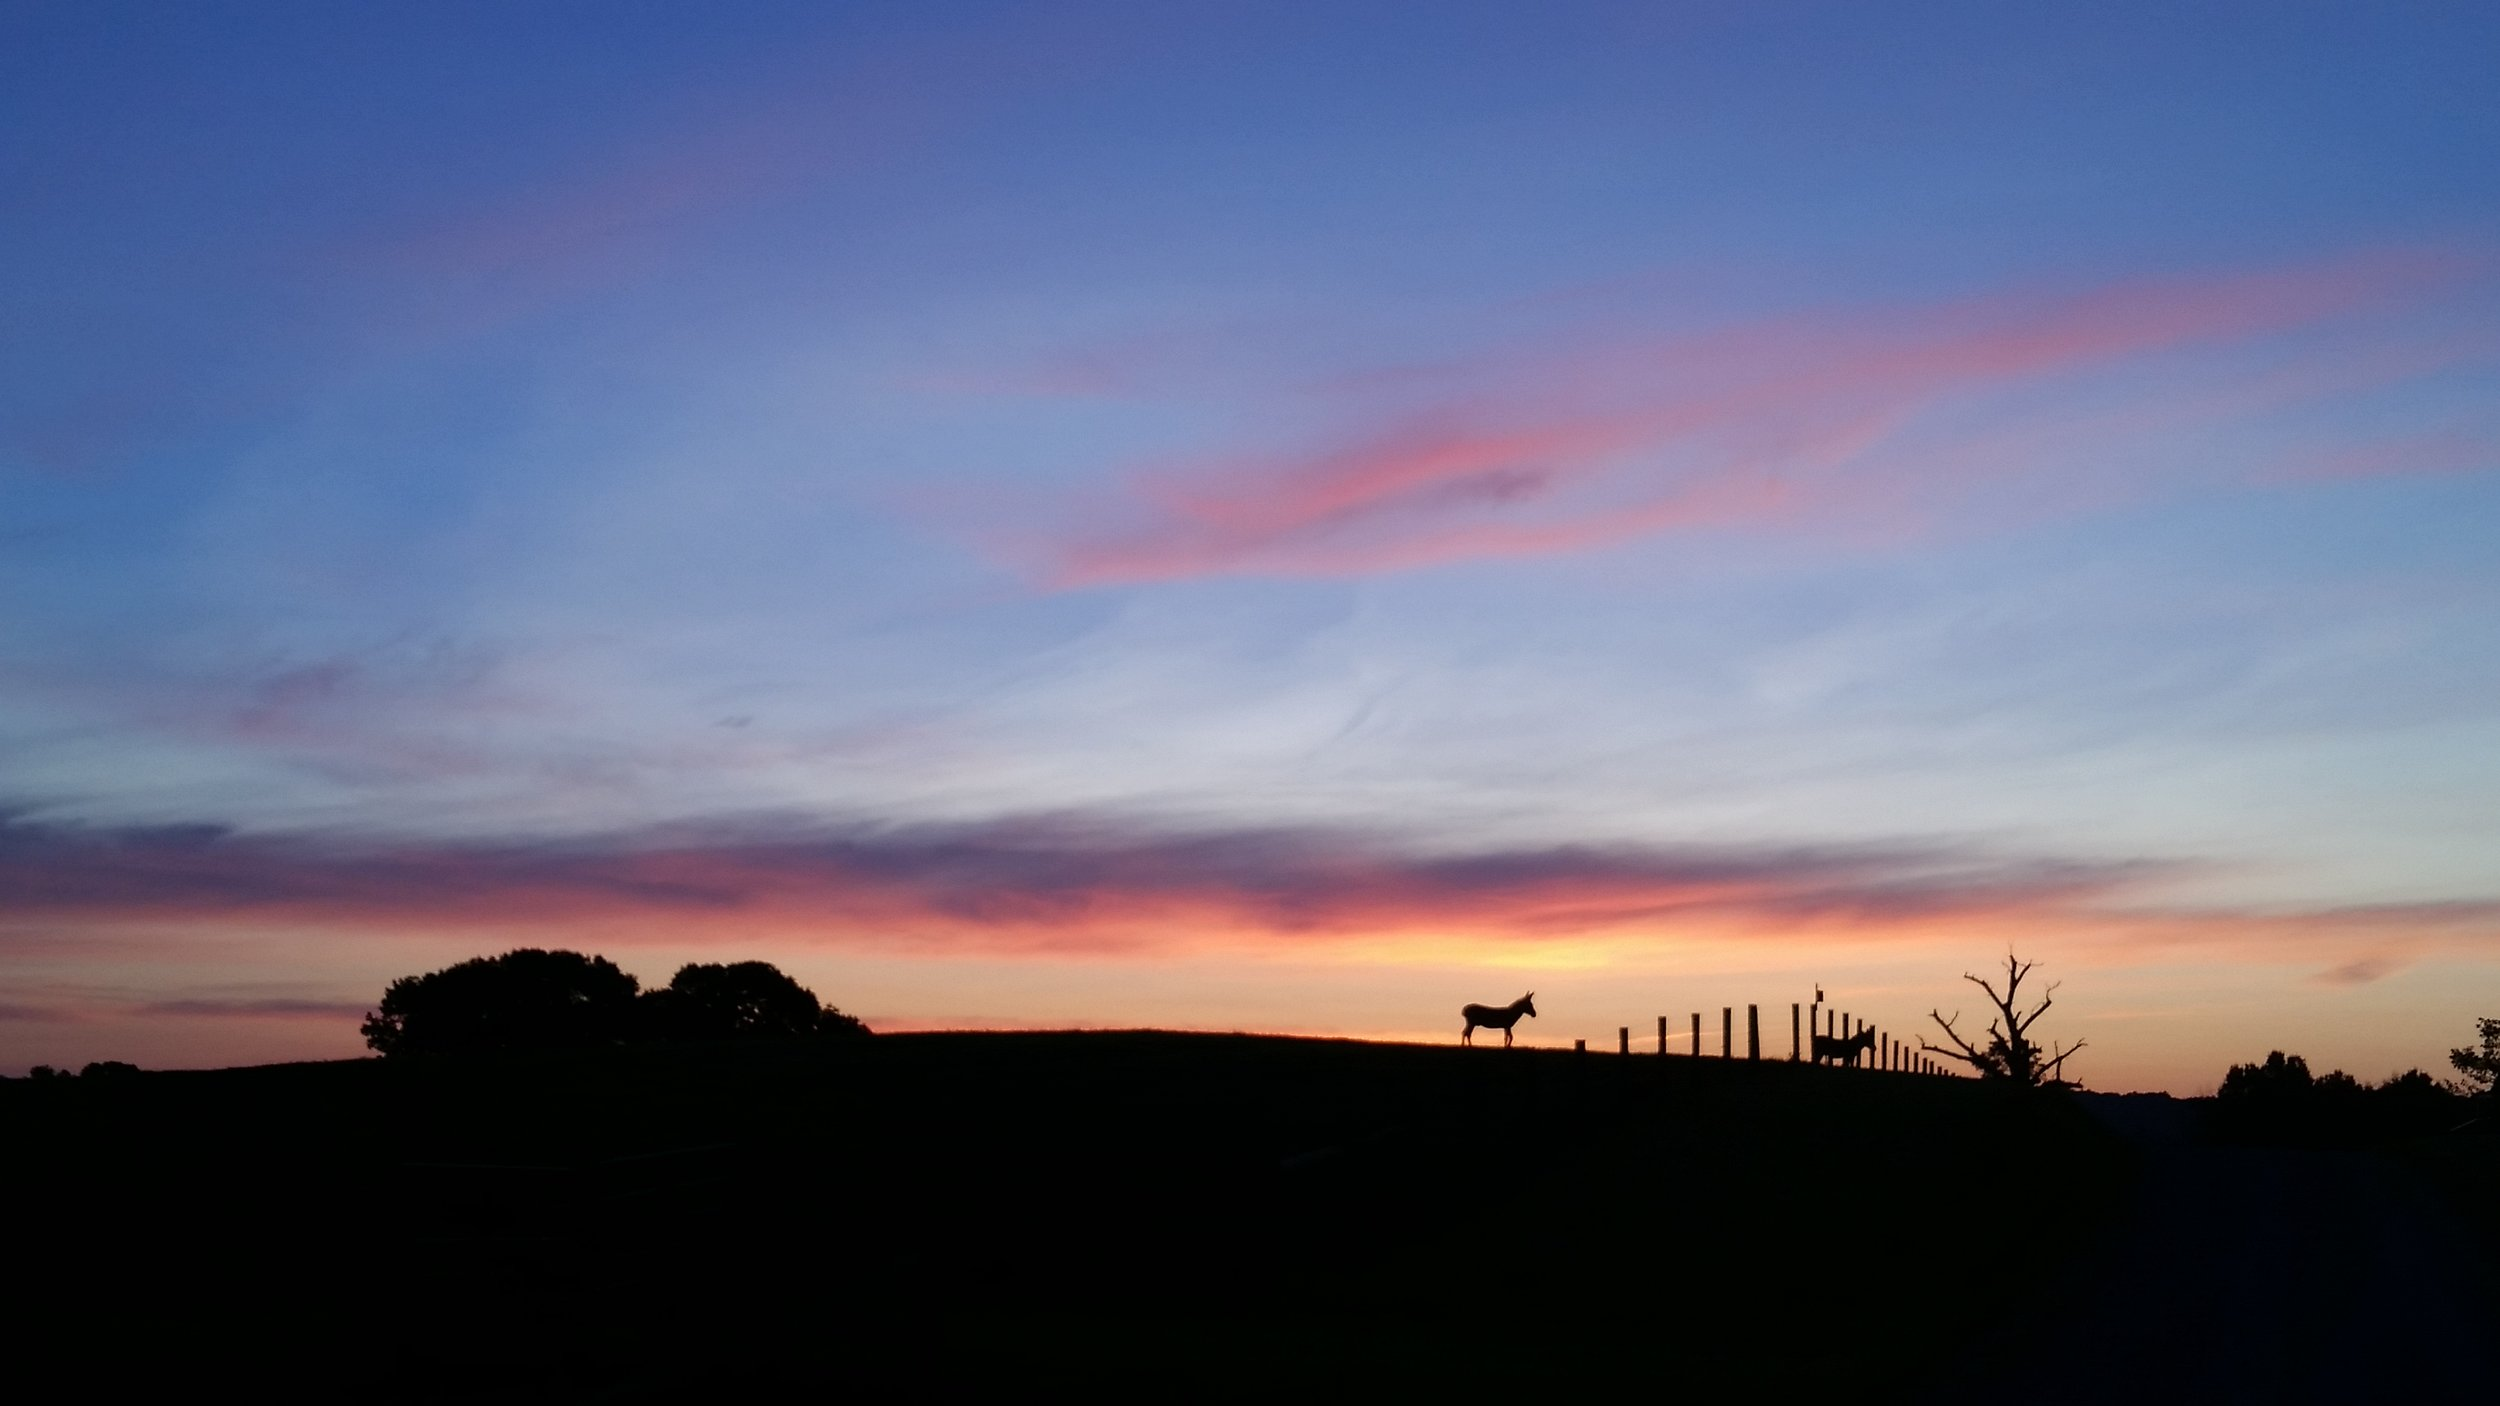 Our donkey friends were such lovely silhouettes in the dawn.